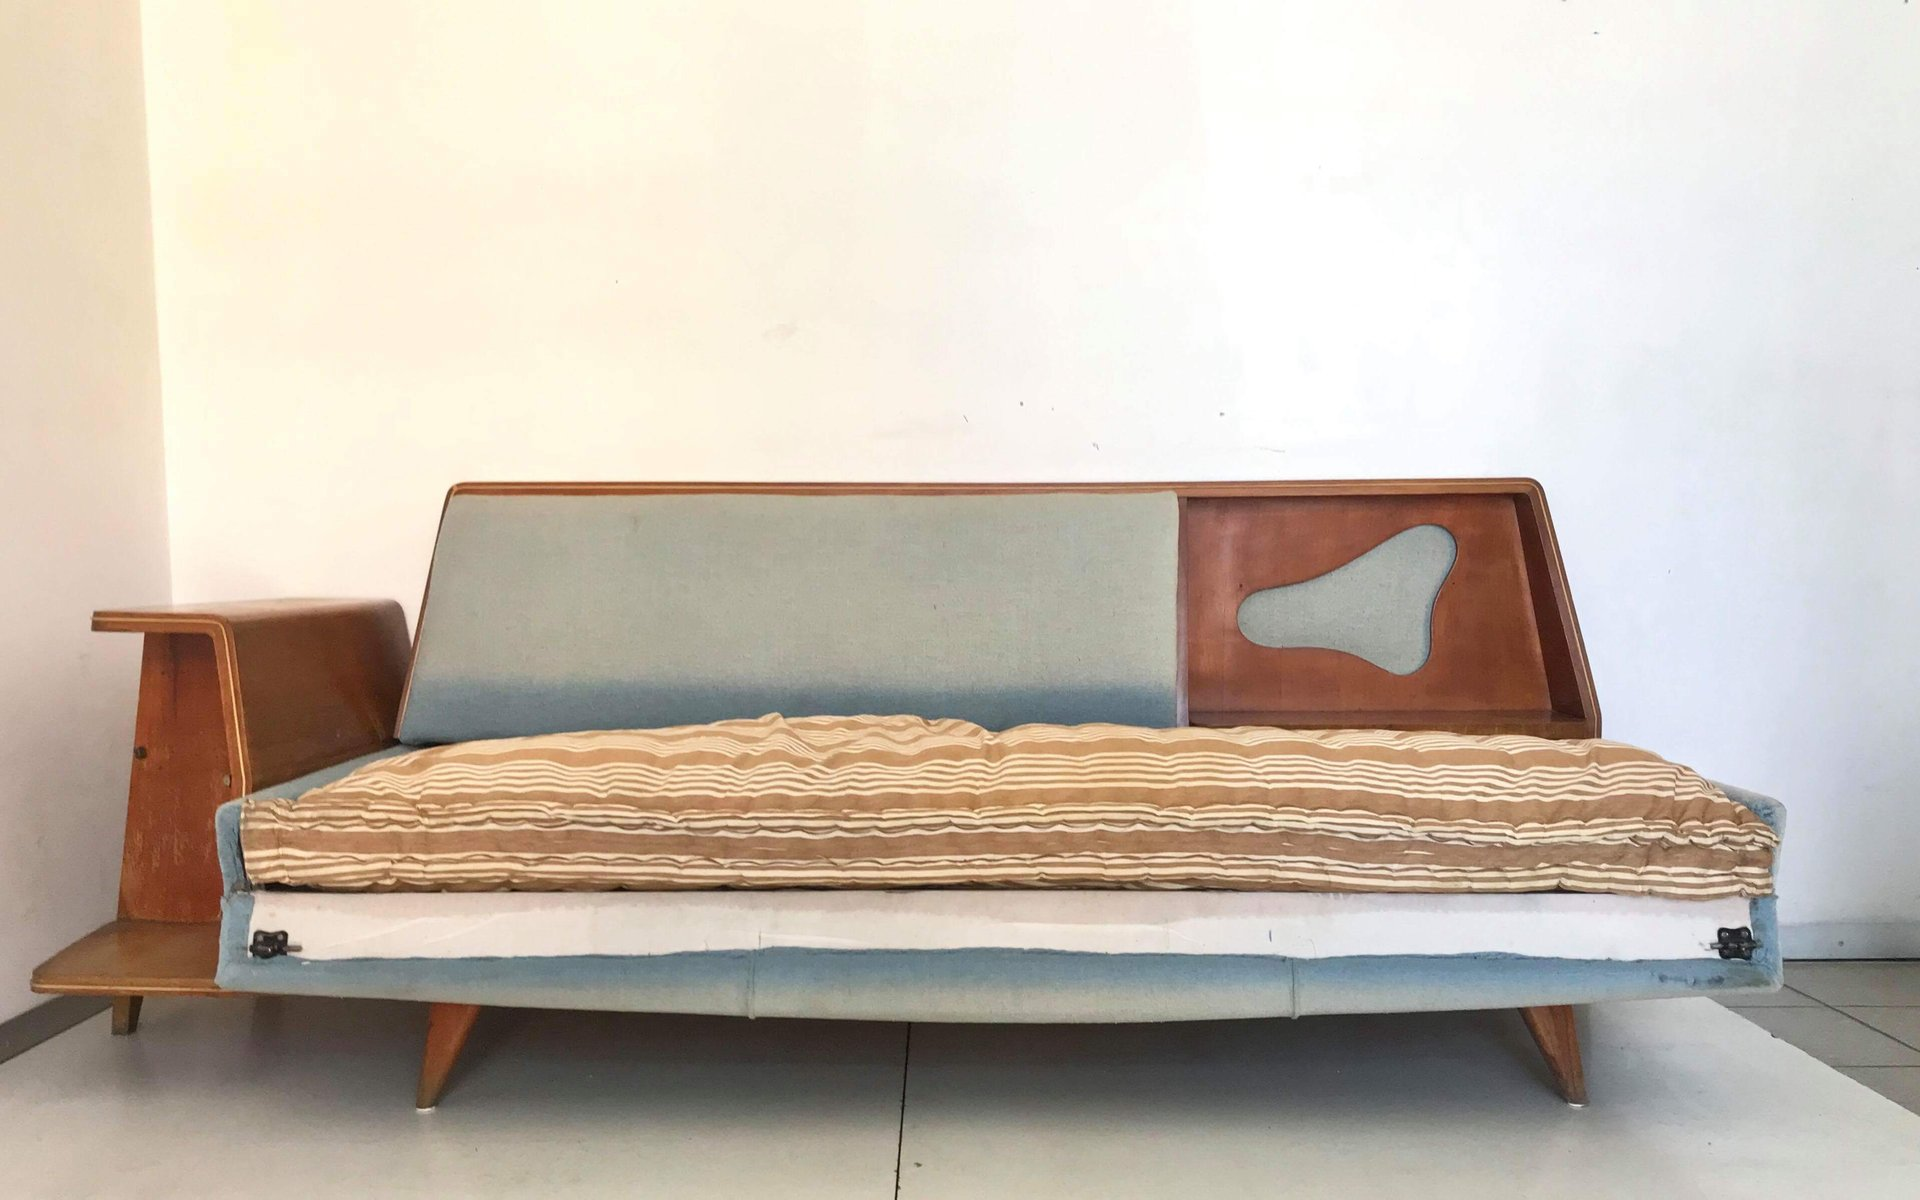 Sofa Bed With Storage Compartment 1960s